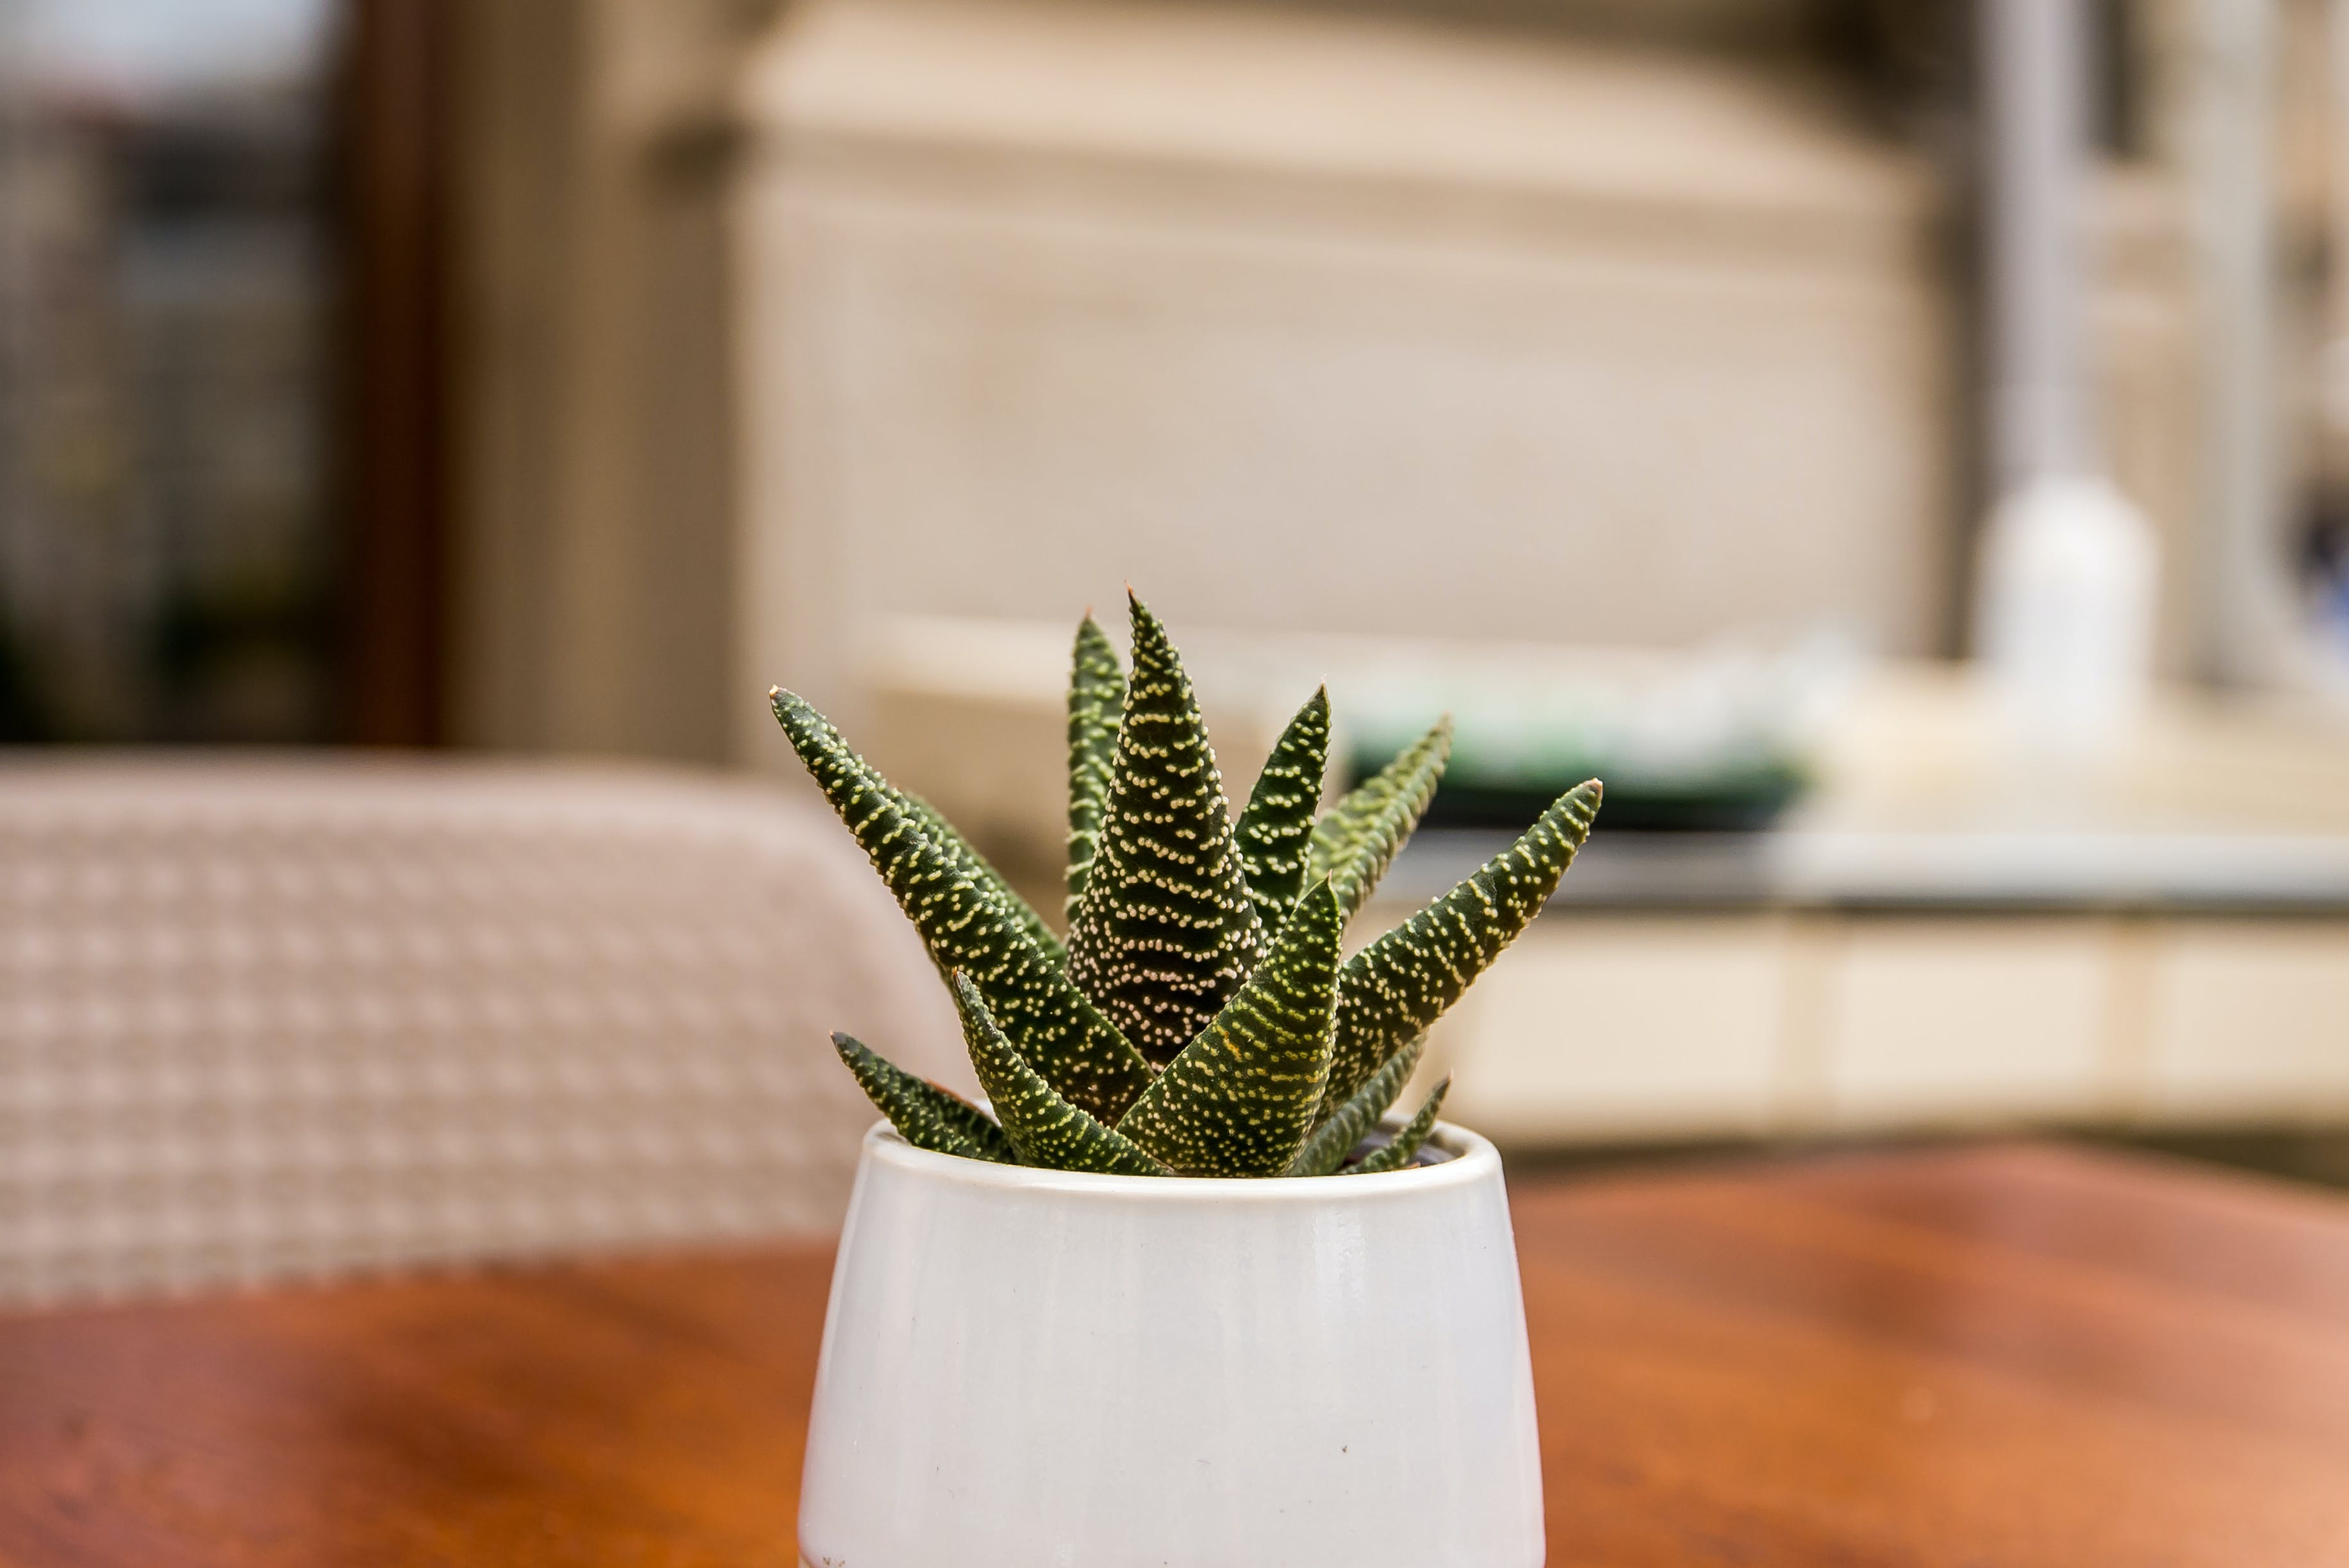 Green Aloe Vera on White Ceramic Vase